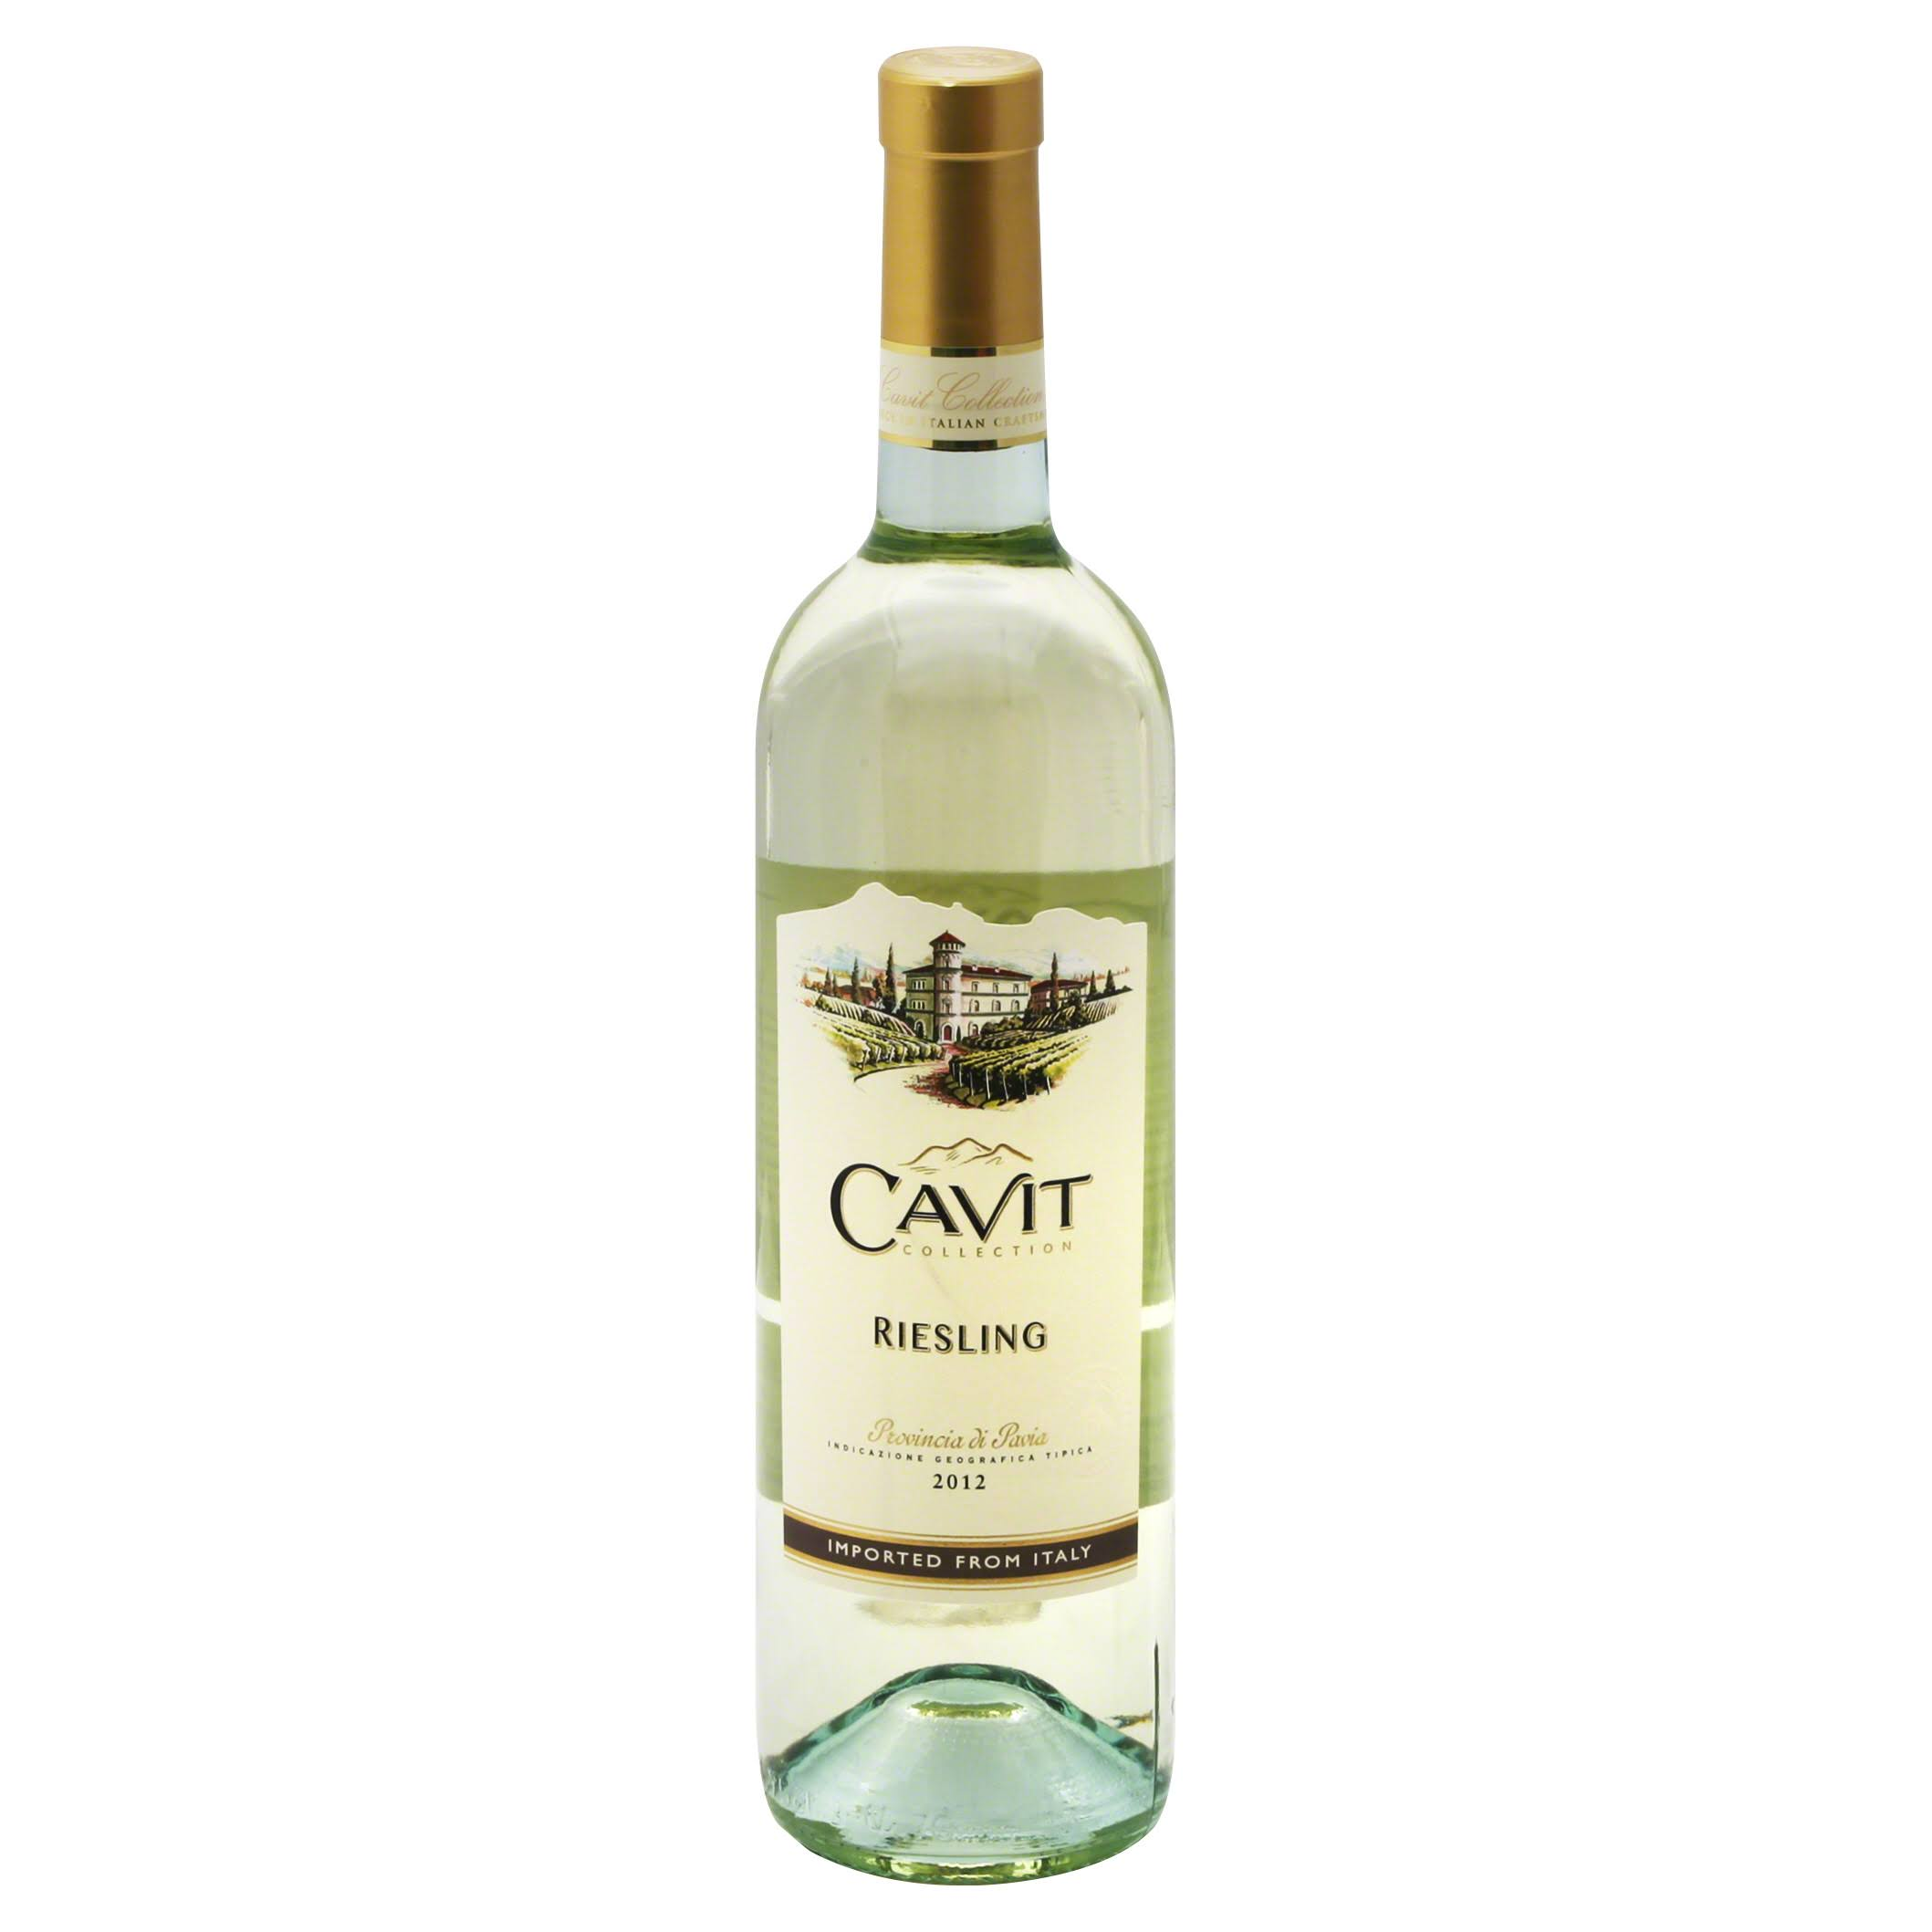 Cavit Collection Riesling